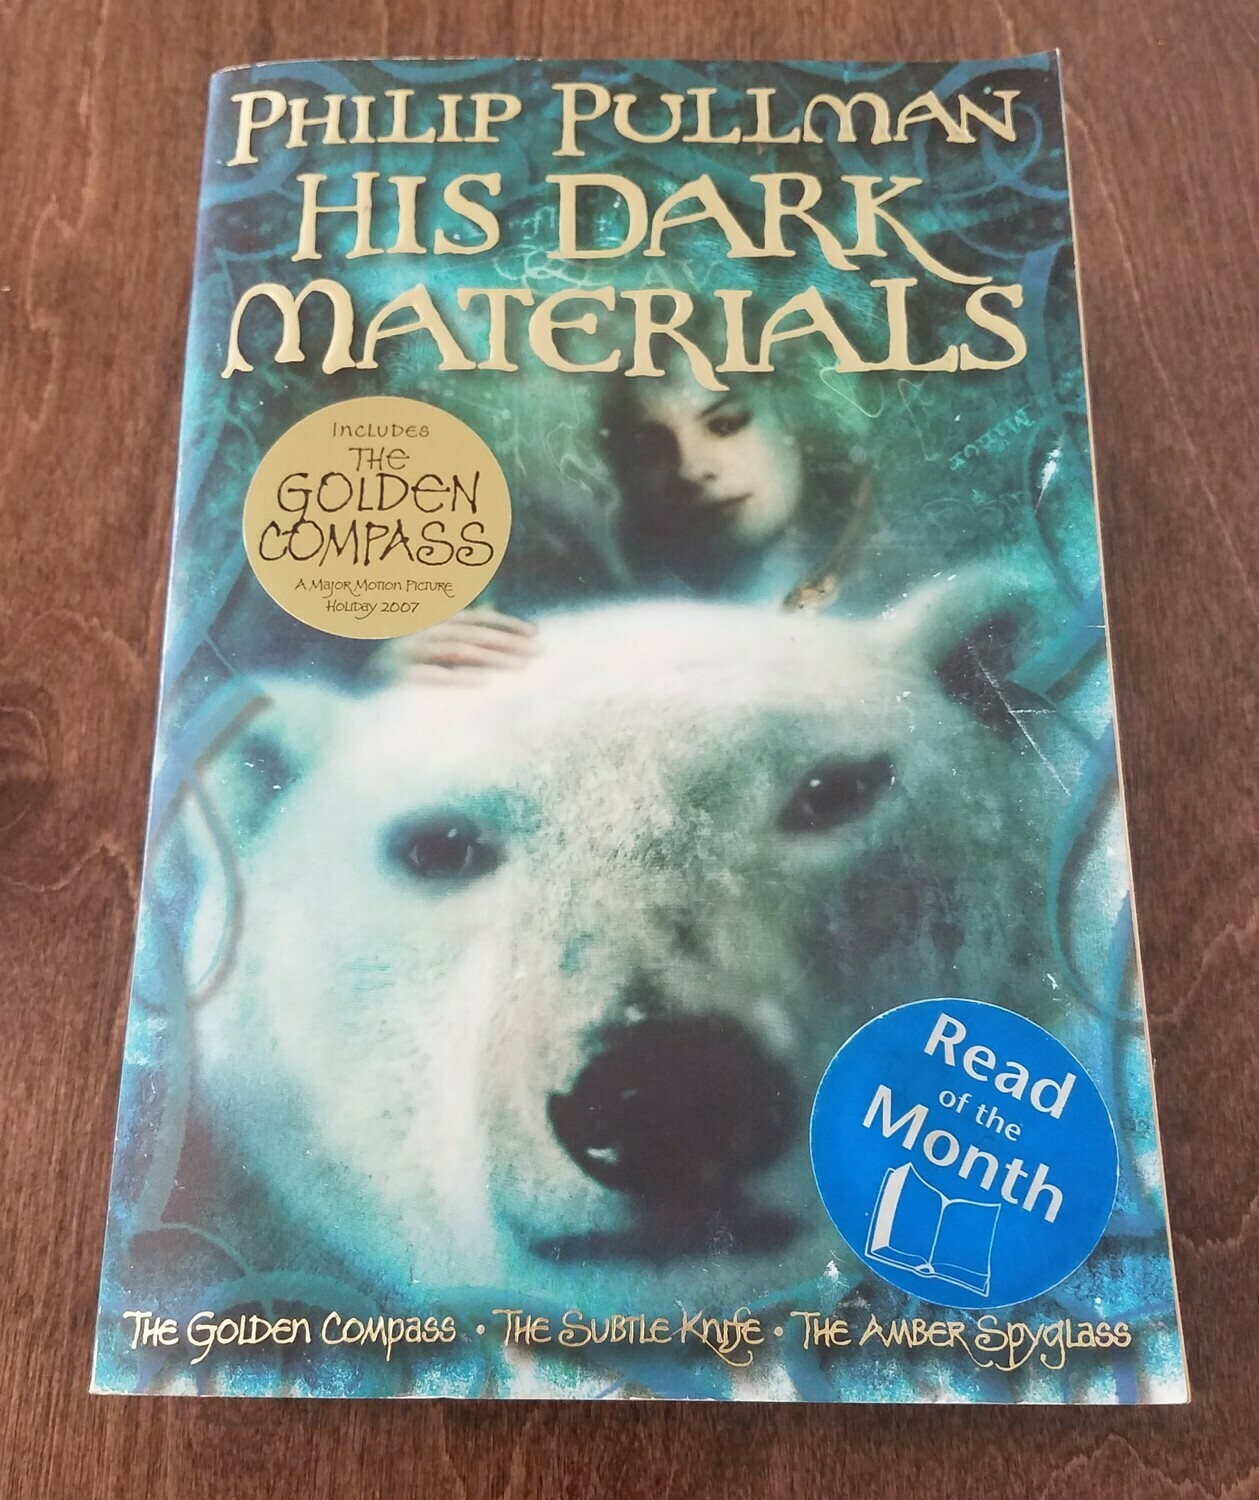 His Dark Materials: The Golden Compass, The Subtle Knife, and The Amber Spyglass by Philip Pullman